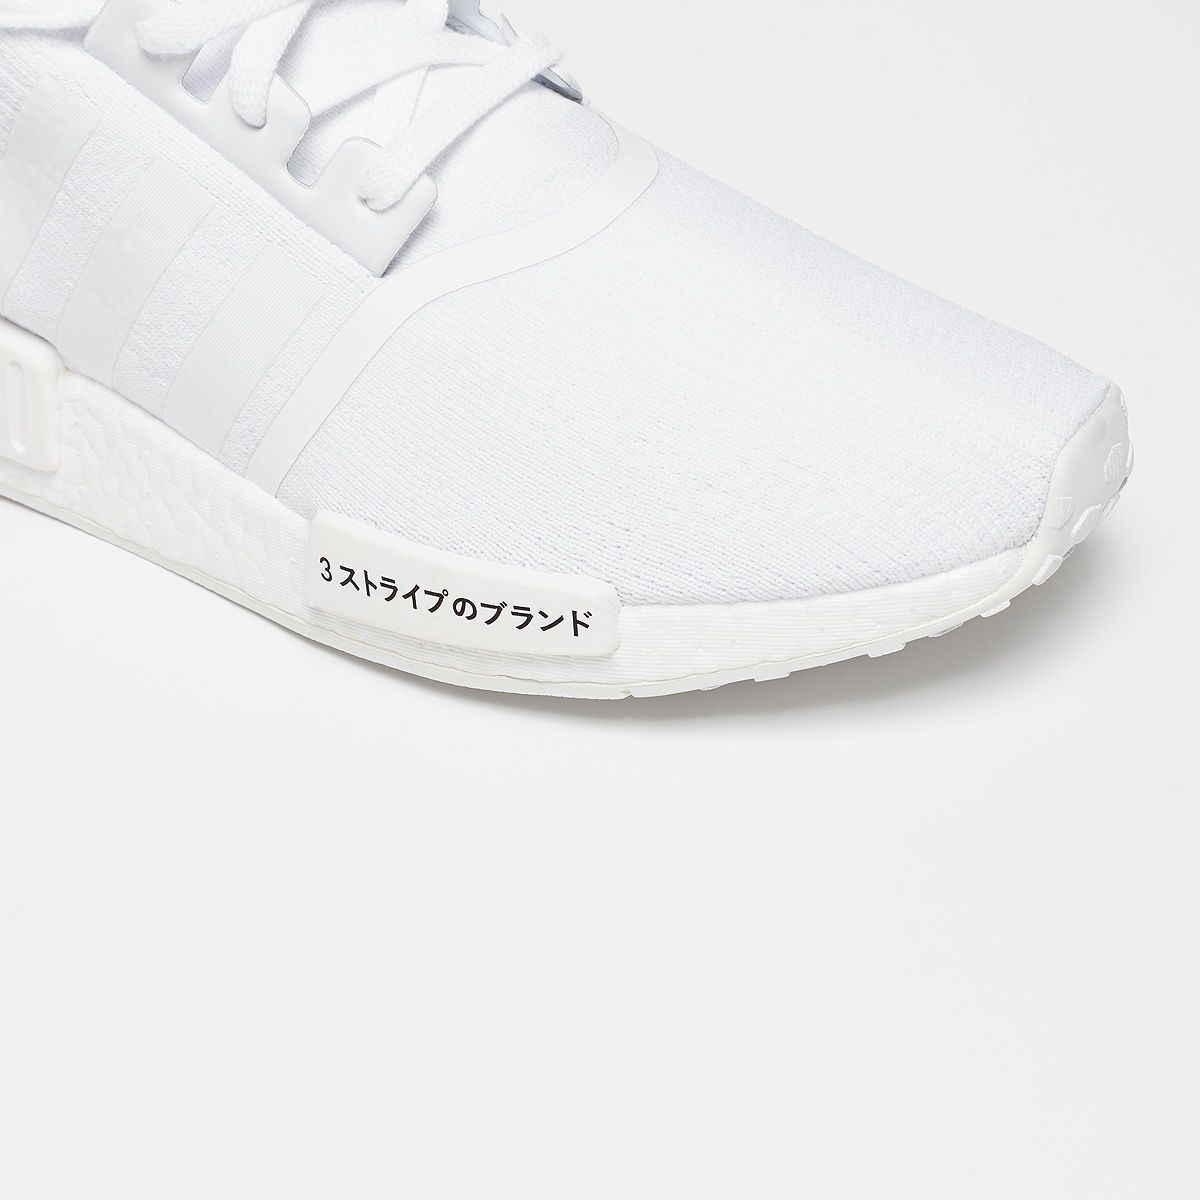 competitive price 91b0f 2bdd9 NMD R1 PK Japan All White - ENStest